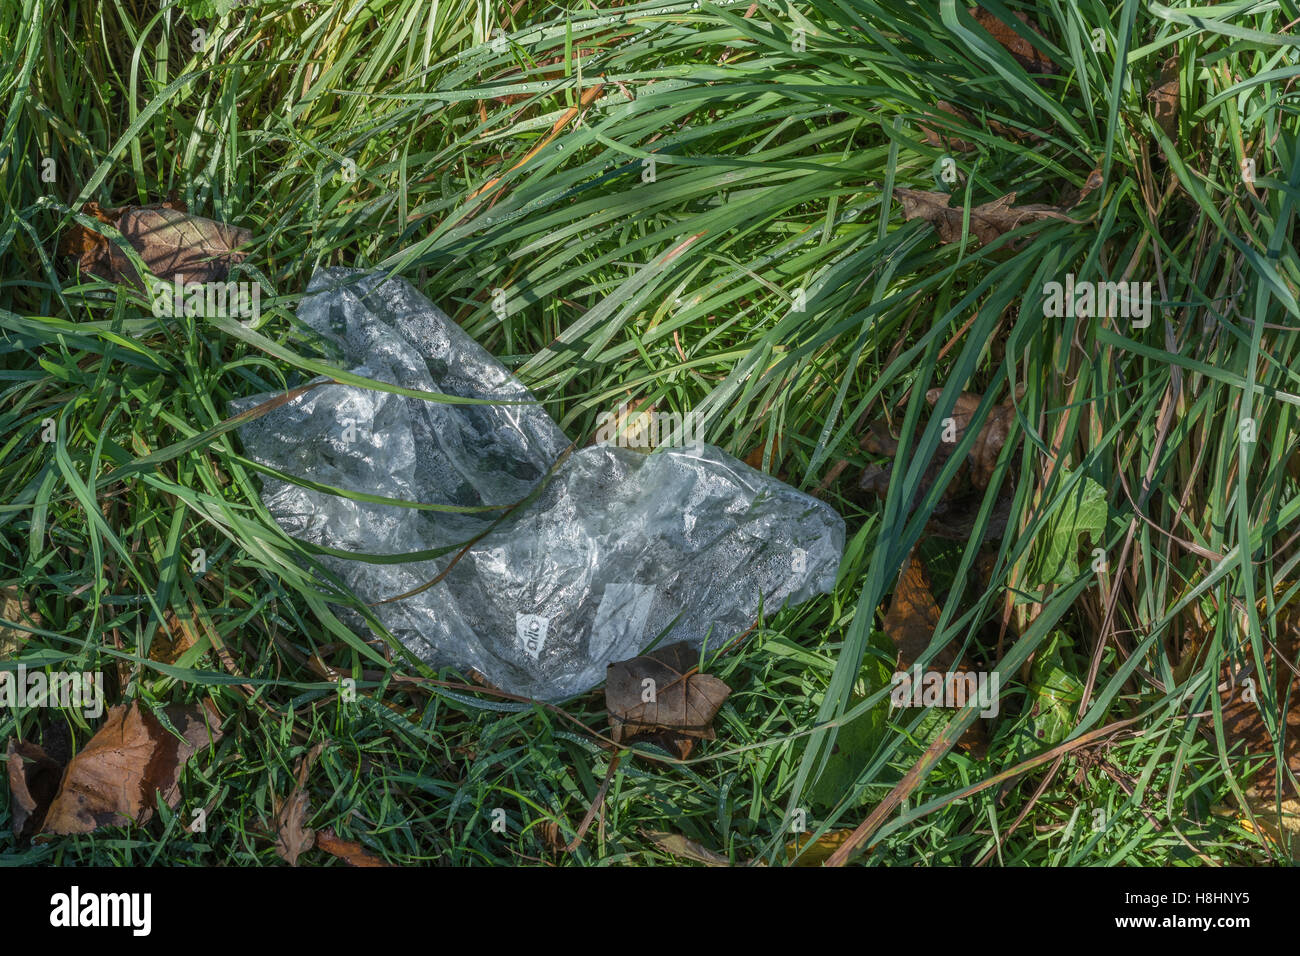 Discarded polythene / plastic bag seen in a country hedgerow. Plastic waste, war on plastic concept. Metaphor environmental - Stock Image